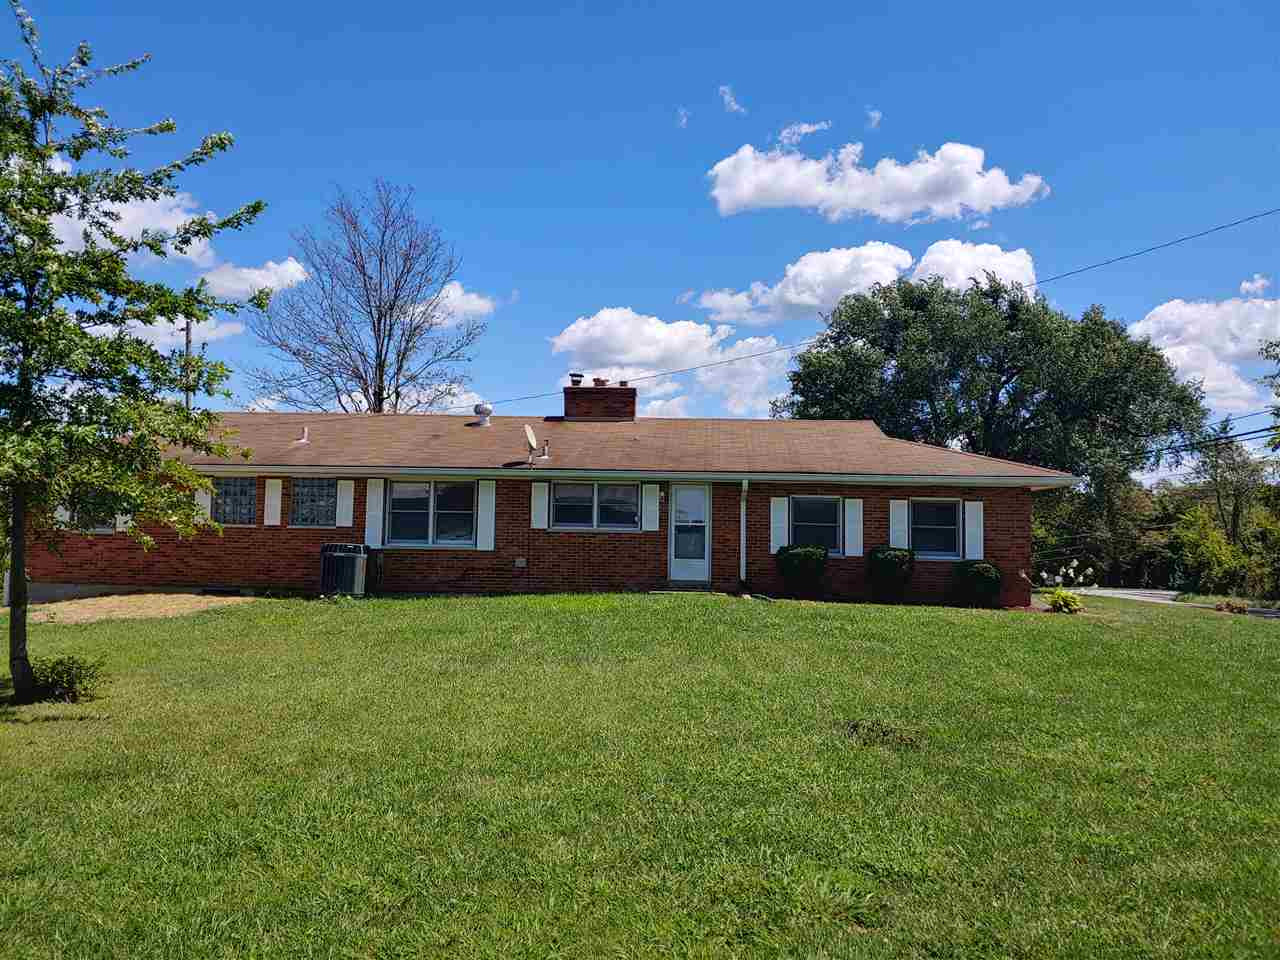 Photo 3 for 225 Ragtown Rd Corinth, KY 41010